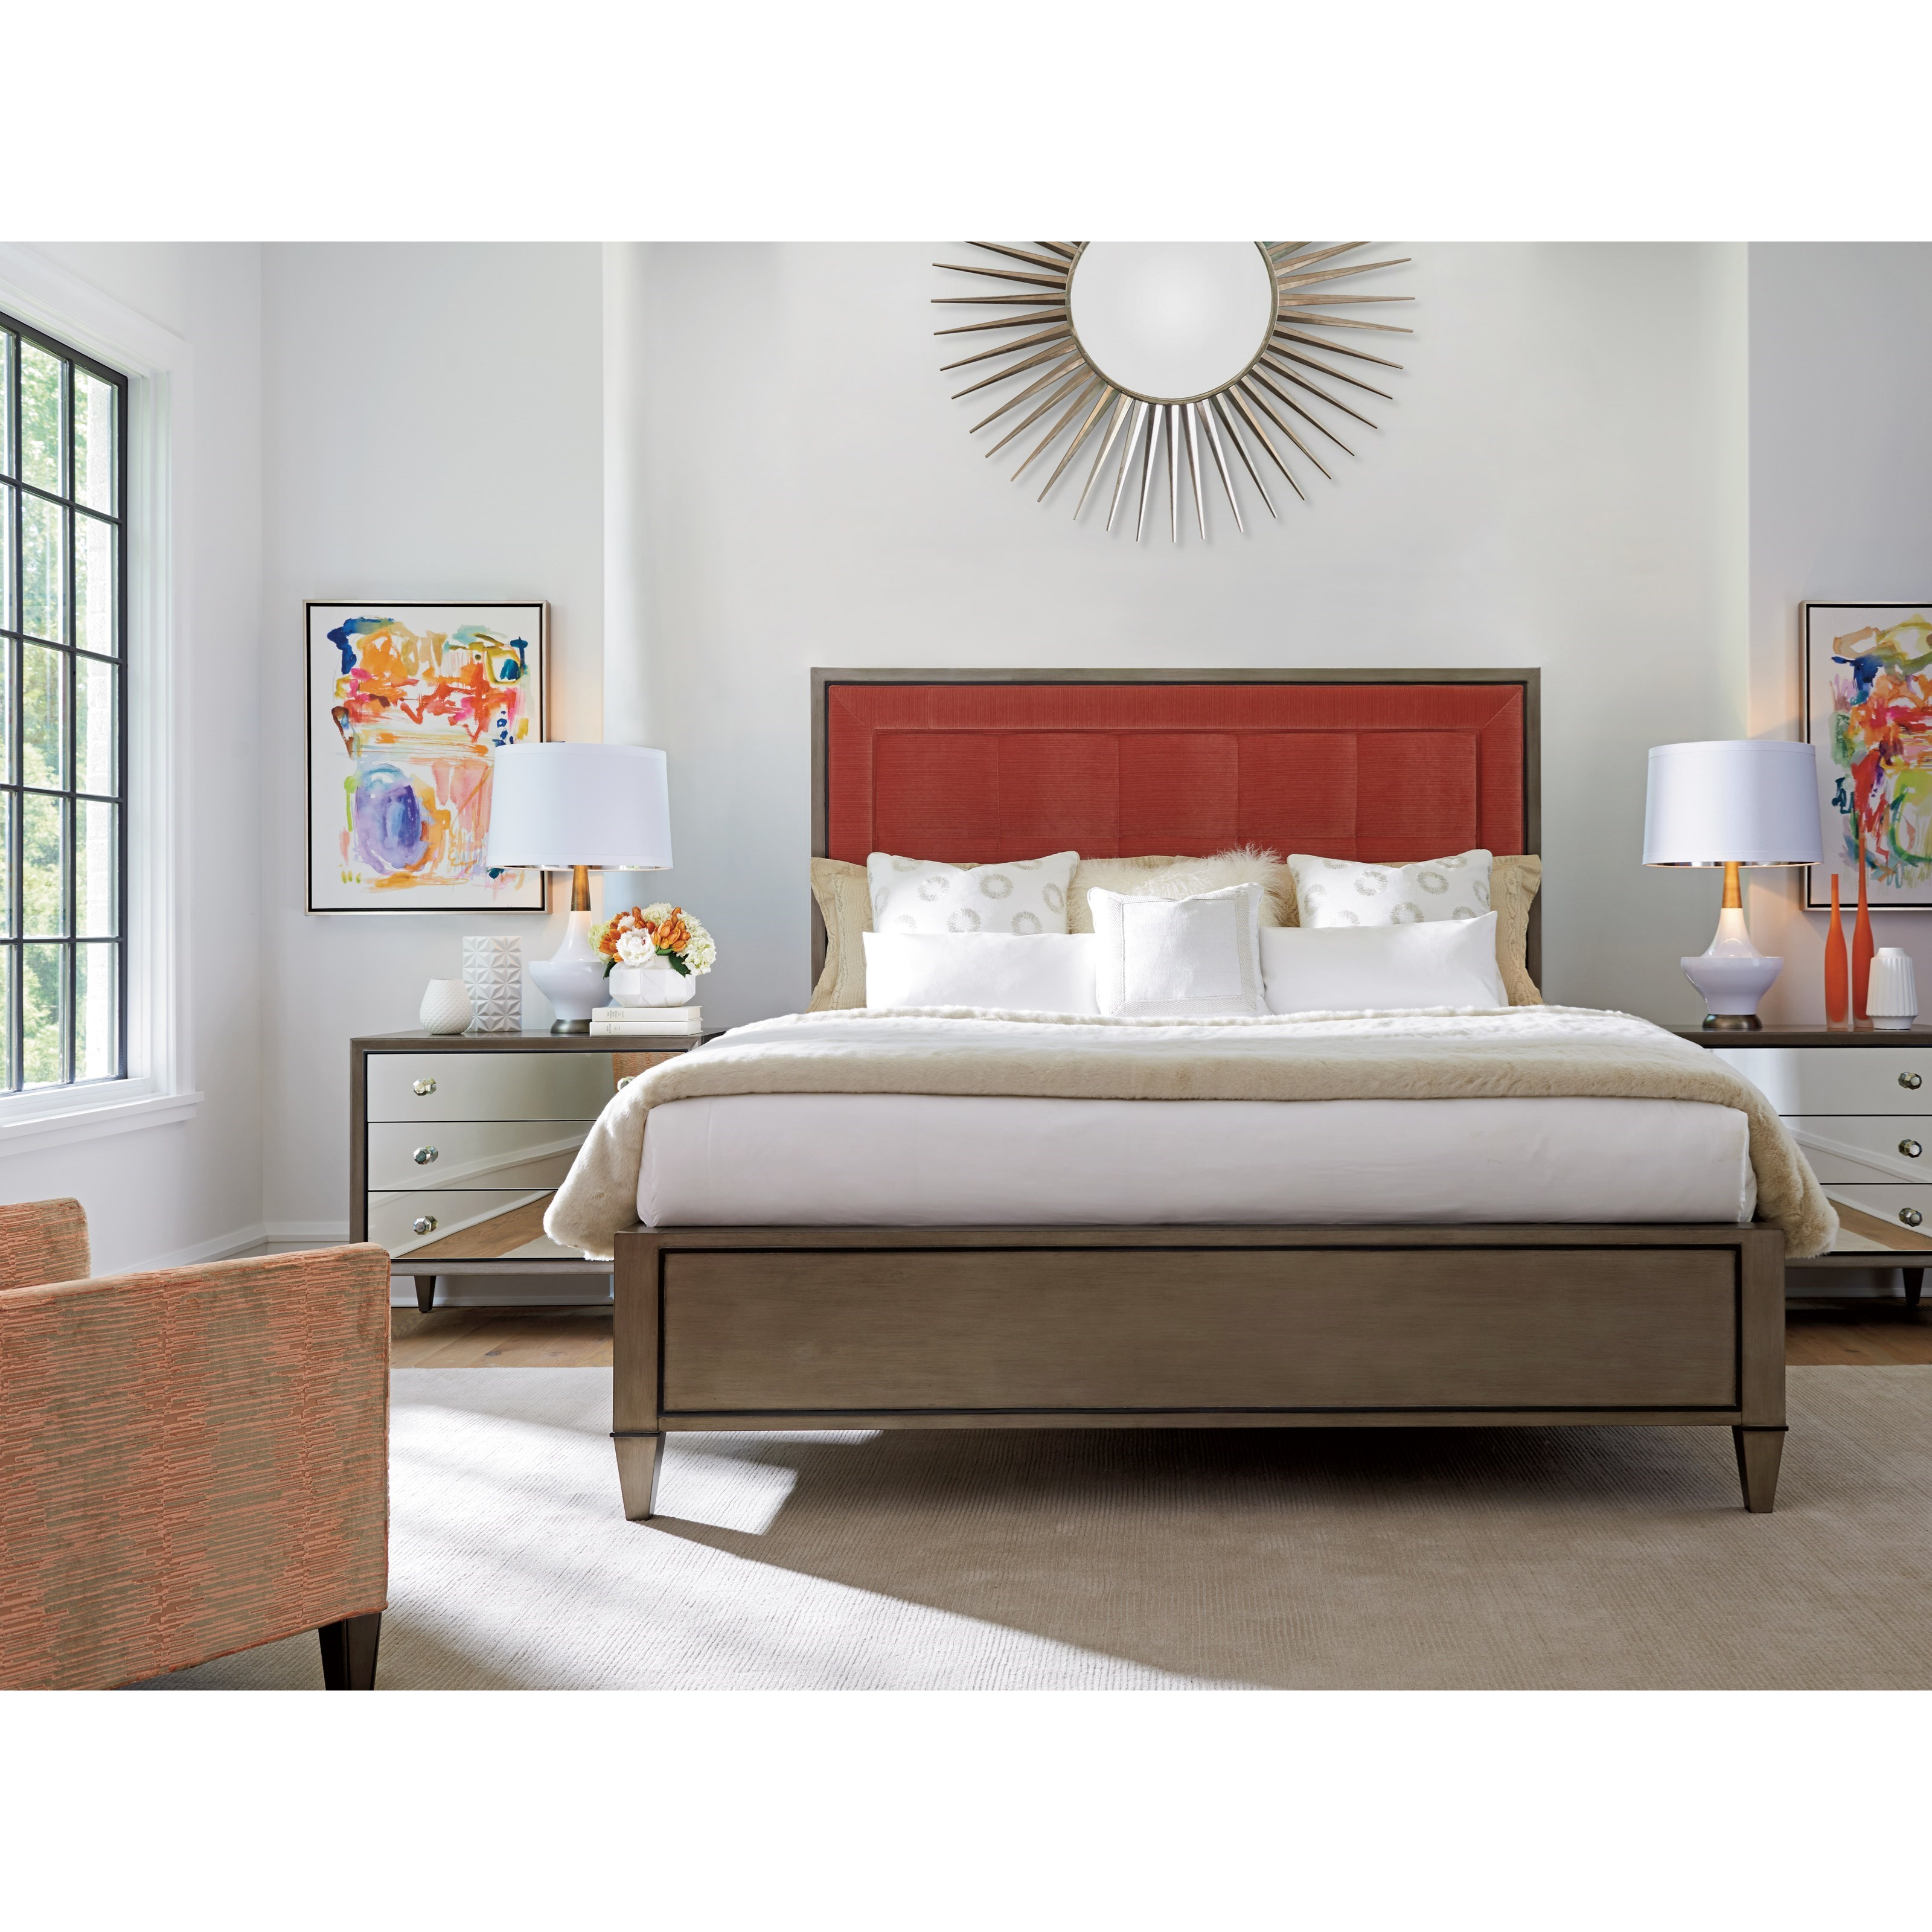 Ariana King Bedroom Group by Lexington at Lindy's Furniture Company